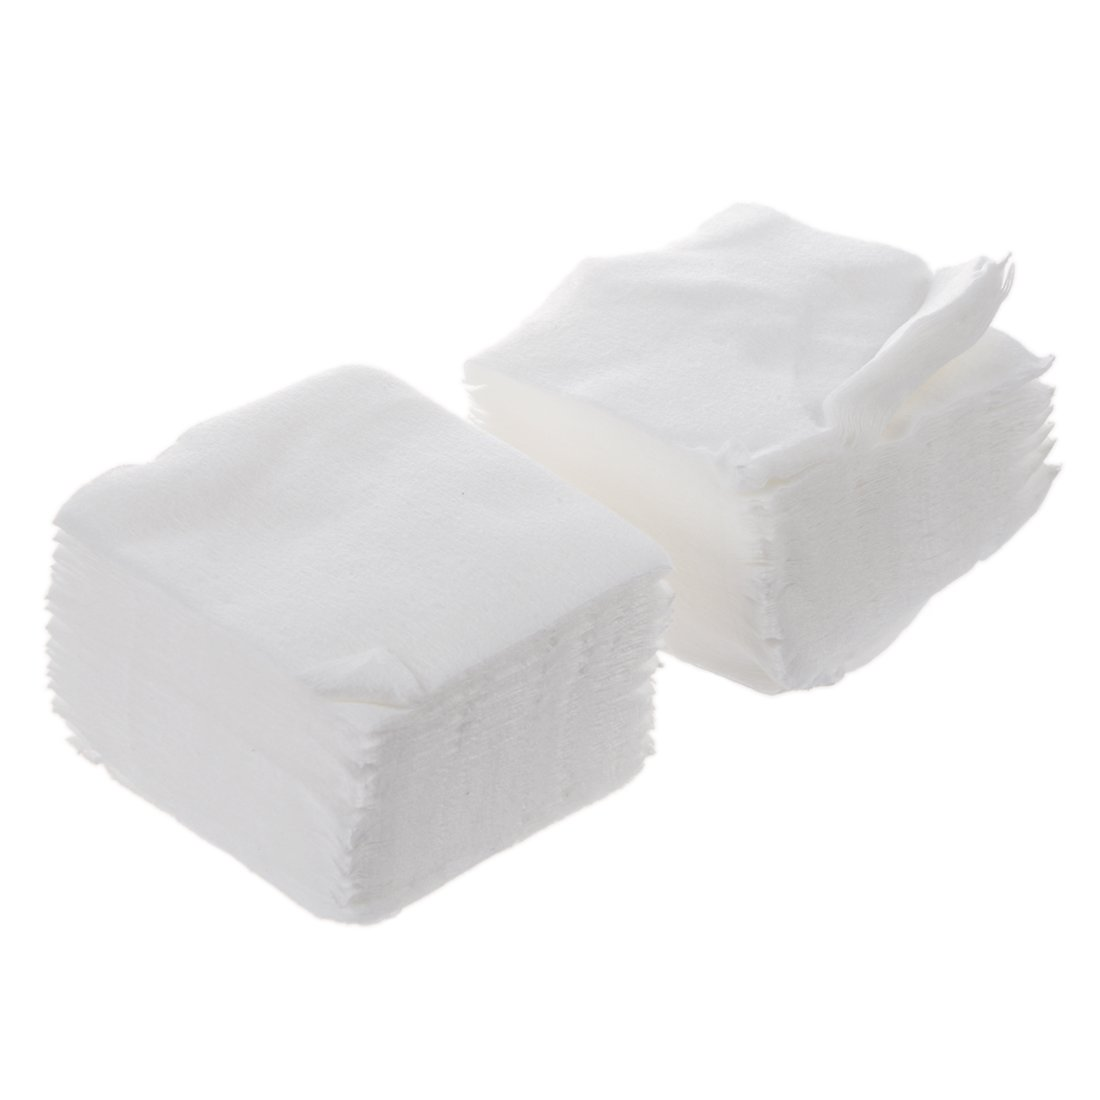 TOOGOO(R) White Rectangle Facial Cotton Pads 200 Pcs for Make Up